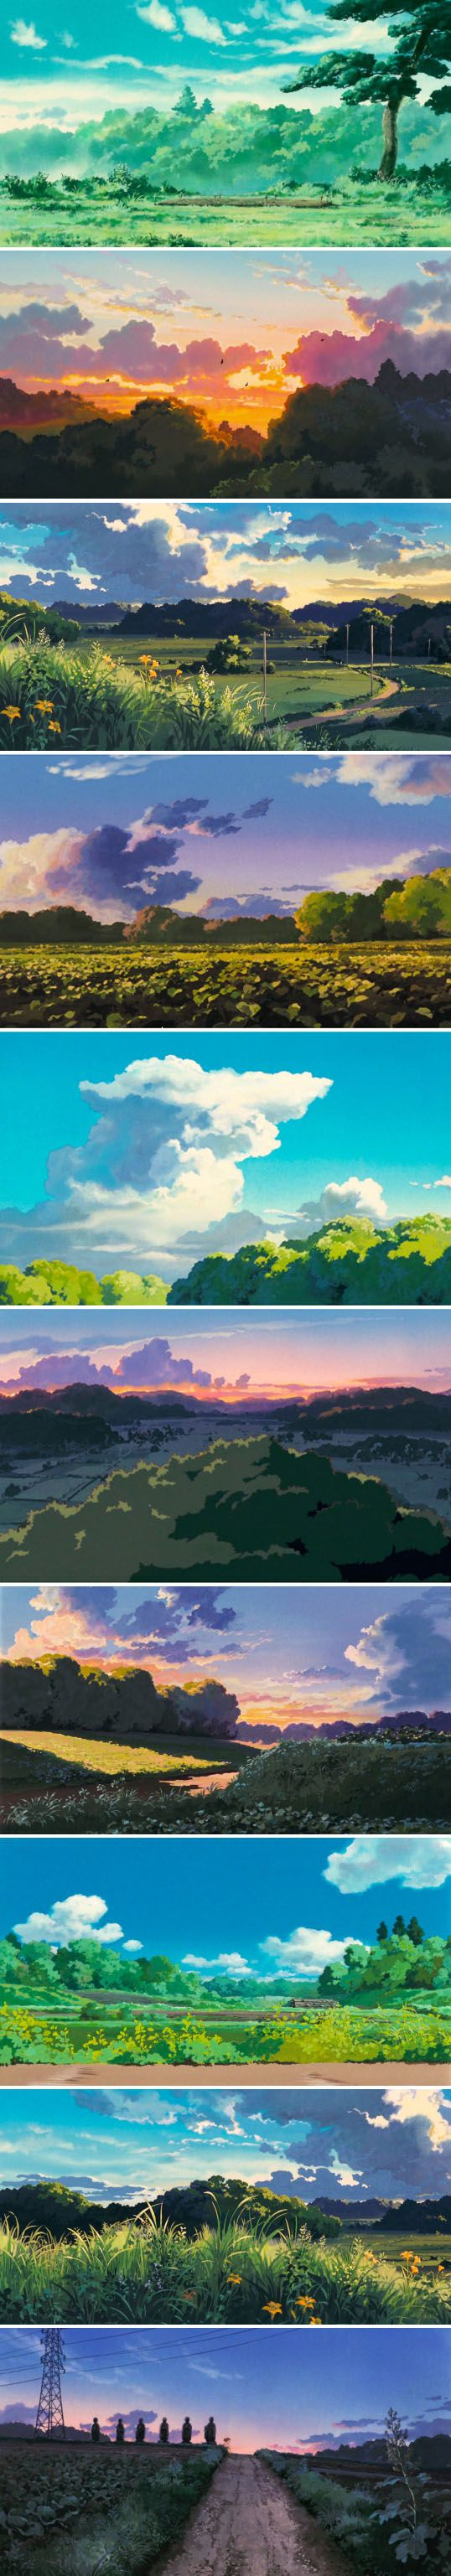 Cloud Strewn Skies Of My Neighbor Totoro - Art Director Kazuo Oga (1988)